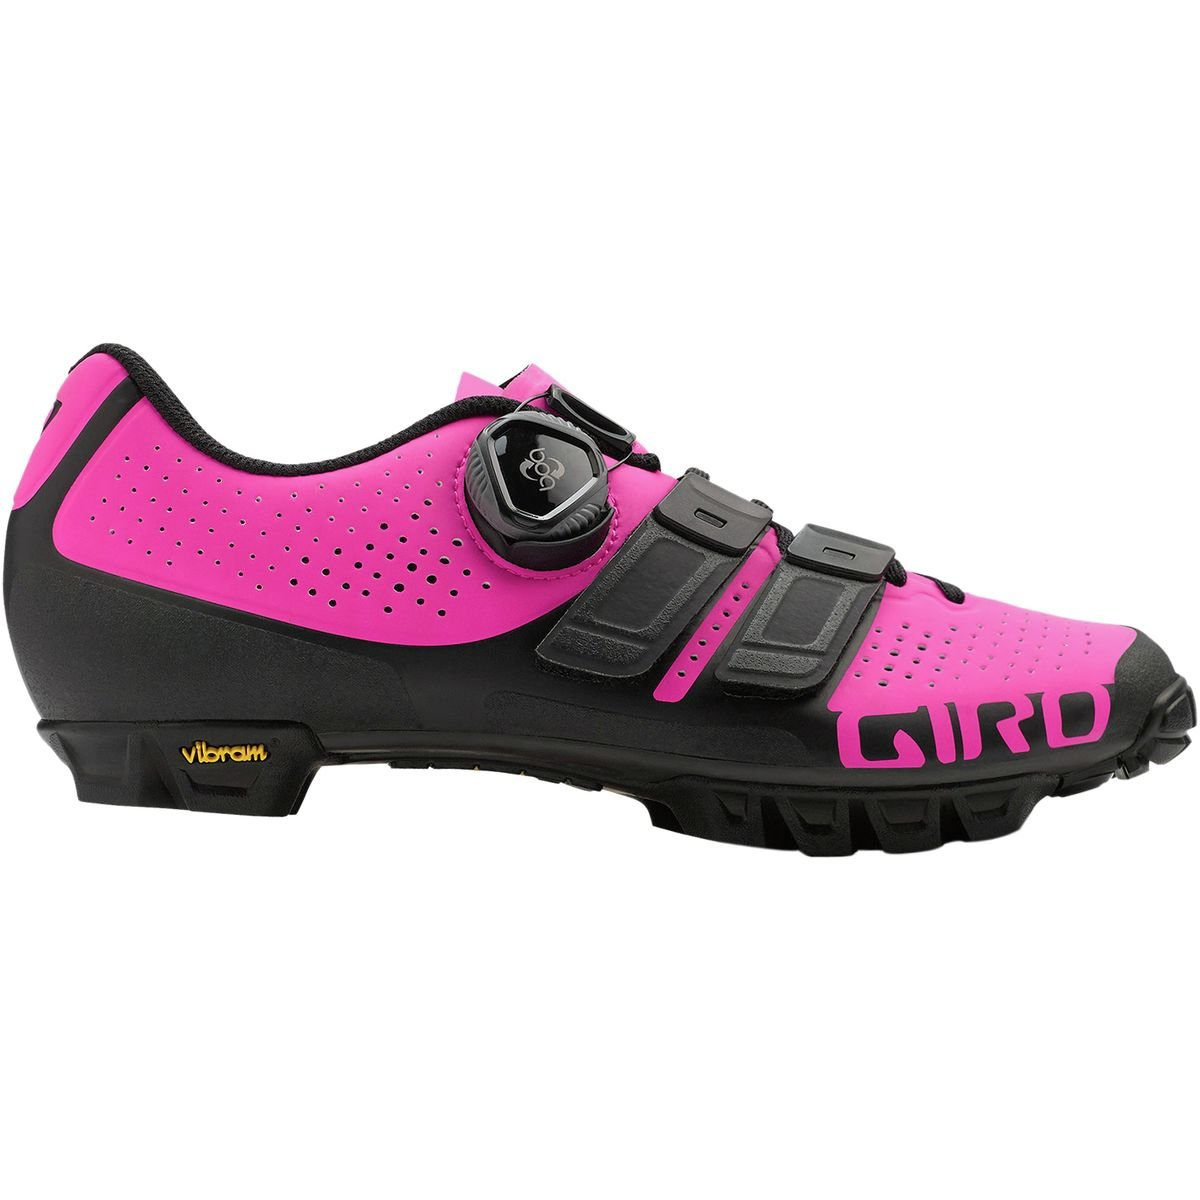 Giro SICA Techlace Cycling Shoe - Women's Black/Bright Pink, 36.0